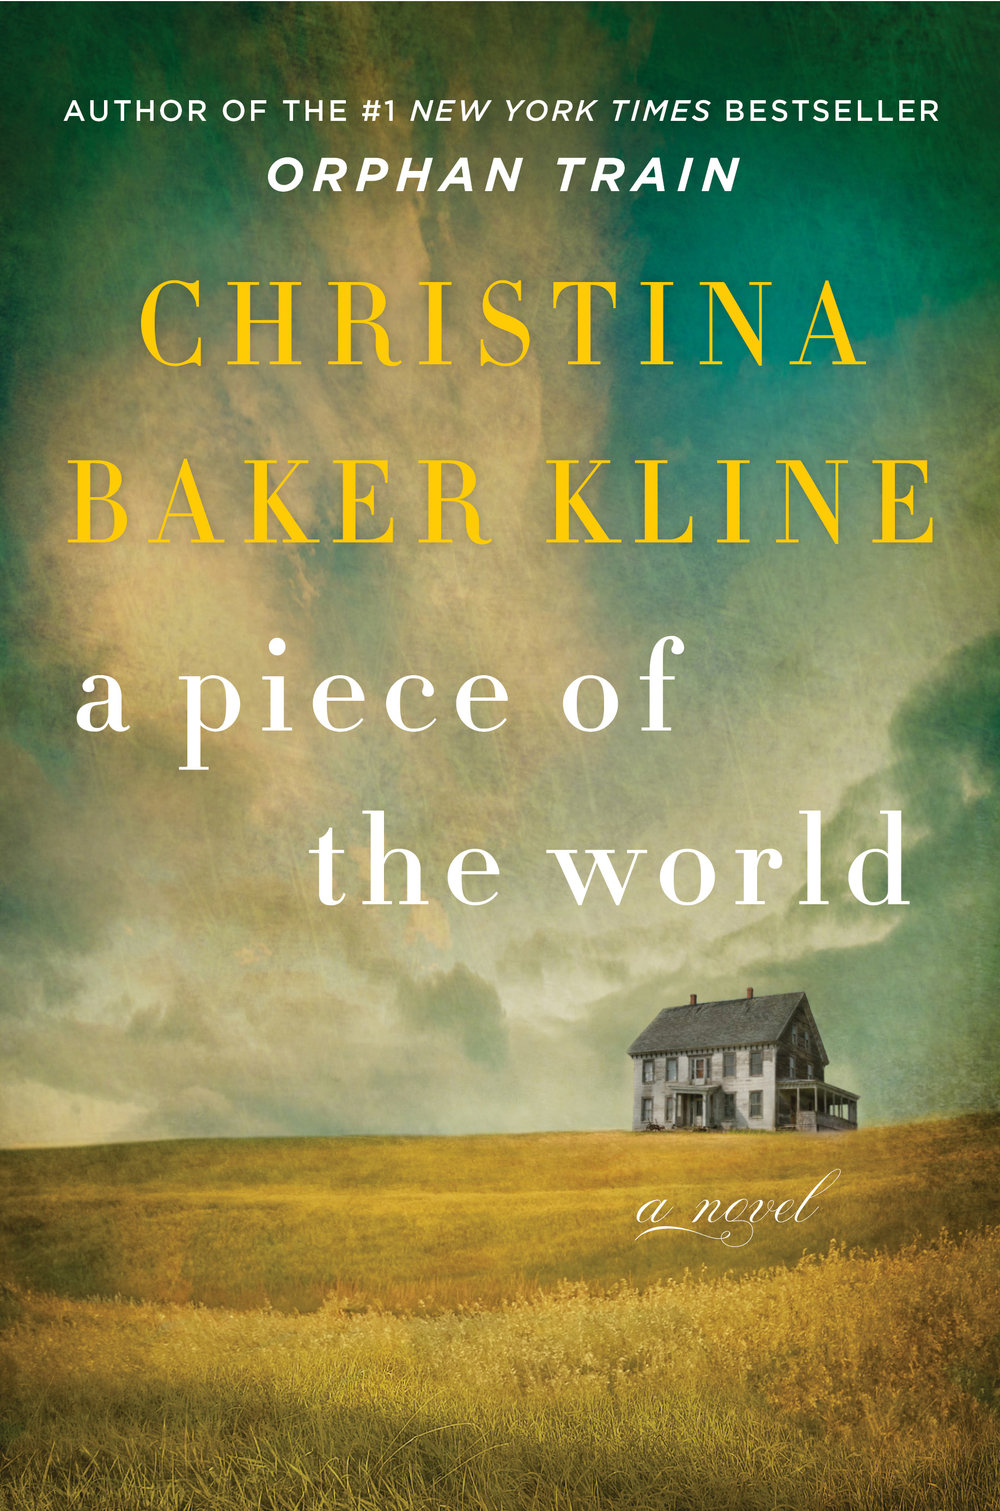 A Piece of the World  by Christina Baker Kline  (William Morrow)    READ MORE